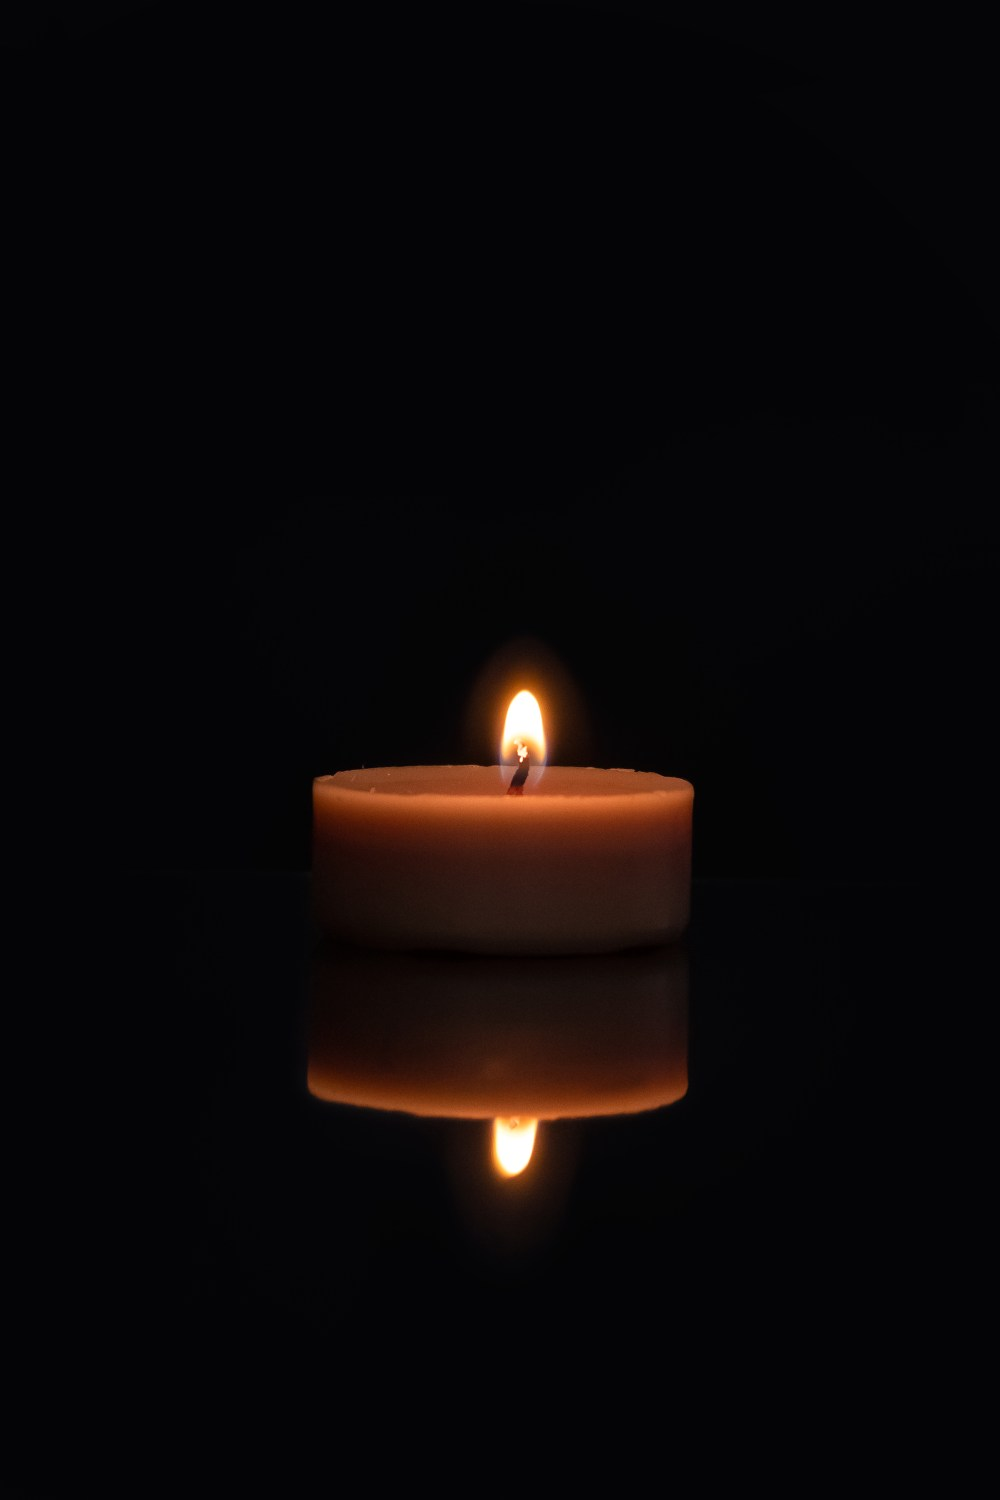 500 candle light pictures download